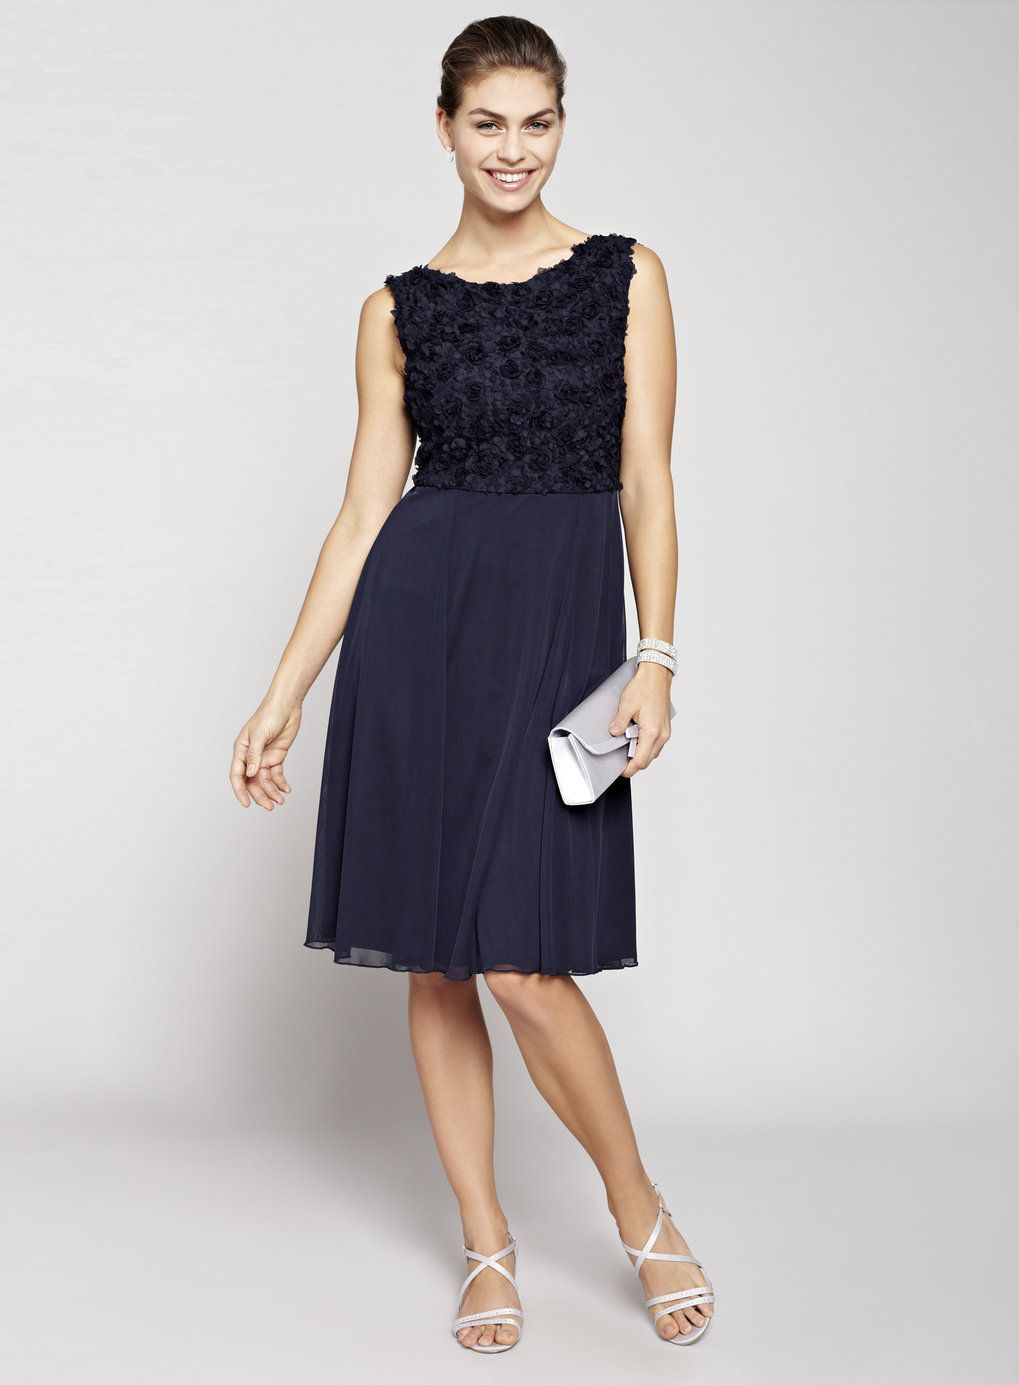 Navy blue bridesmaid dresses are perfect for any wedding, no matter what the season. Your girls will appreciate your choice of a classic and flattering shade. The hue offers all the comforts of a forgiving black dress, with a little more versatility.